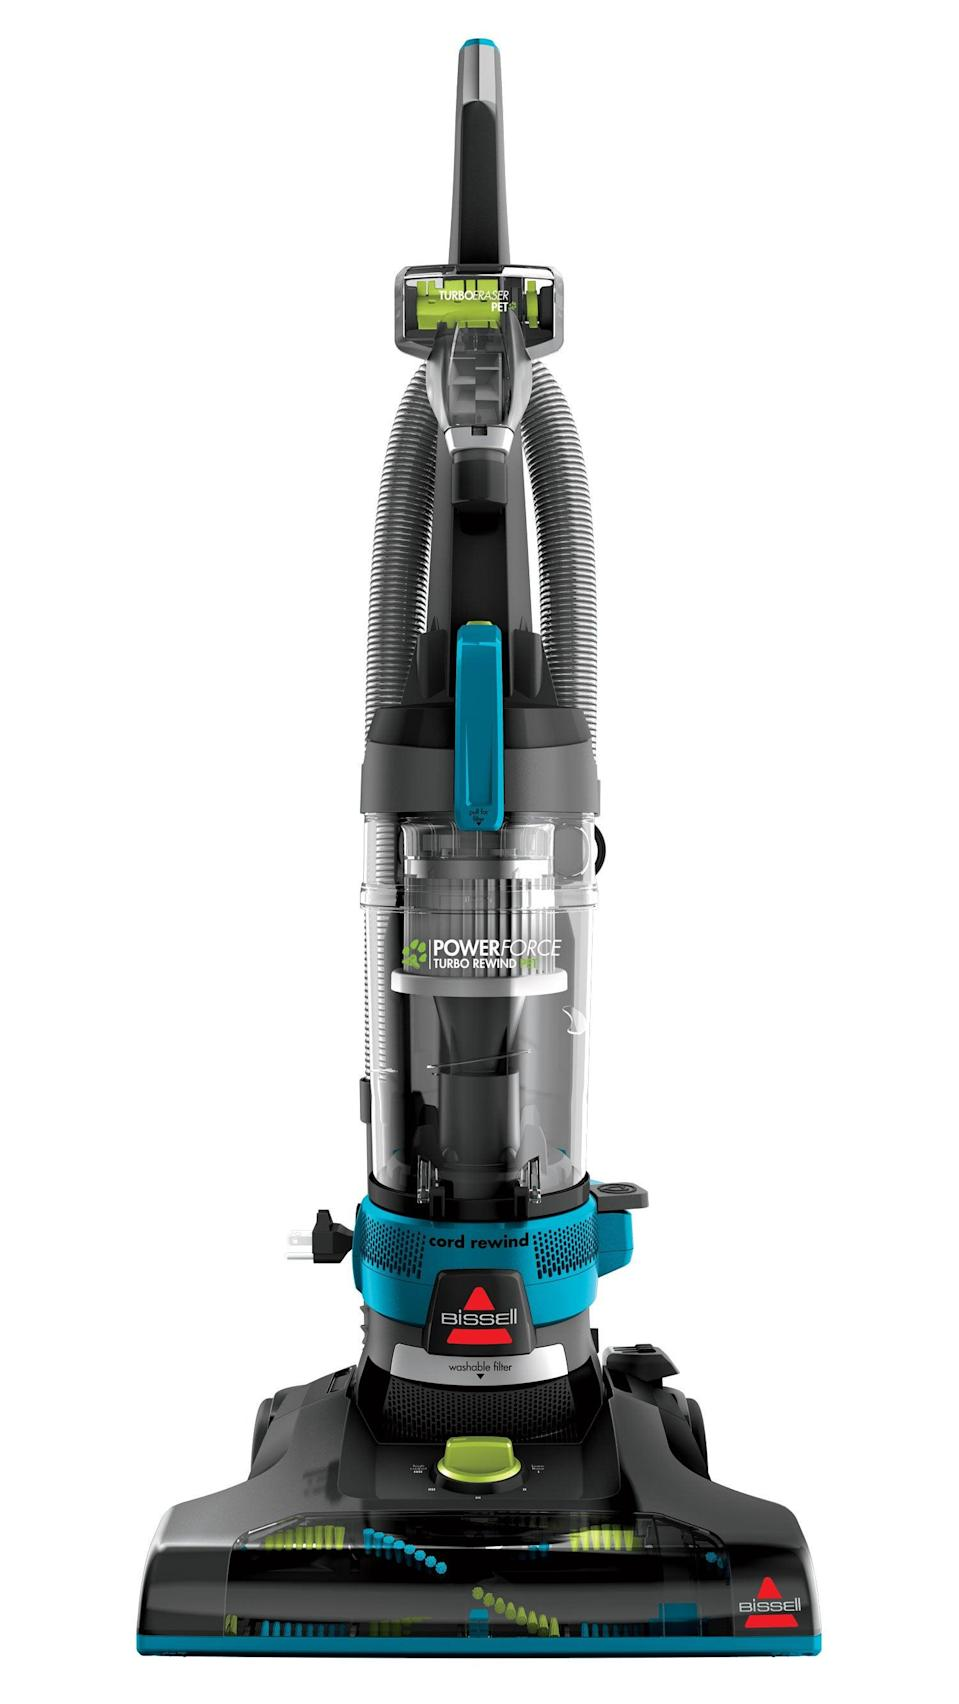 "<h2><a href=""https://fave.co/2KbtmfE"" rel=""nofollow noopener"" target=""_blank"" data-ylk=""slk:BISSELL PowerForce Helix Turbo Rewind Vacuum"" class=""link rapid-noclick-resp"">BISSELL PowerForce Helix Turbo Rewind Vacuum</a></h2><br><strong>The Hype:</strong> 4.6 out of 5 stars and 341 reviews on <a href=""https://fave.co/2KbtmfE"" rel=""nofollow noopener"" target=""_blank"" data-ylk=""slk:Walmart"" class=""link rapid-noclick-resp"">Walmart</a><br><br><strong>Clean Fiends Say:</strong> ""This is a good priced vacuum with high-end engineering and design. The vacuum works very well yet is lightweight (cost savings?) and thus, is really easy to move around."" – <em>Cuteverythingcom, Walmart reviewer</em><br><br><em>Shop <strong><a href=""https://fave.co/3462p45"" rel=""nofollow noopener"" target=""_blank"" data-ylk=""slk:Walmart"" class=""link rapid-noclick-resp"">Walmart</a></strong> </em><br><br><strong>Bissell</strong> BISSELL PowerForce Helix Turbo Rewind Vacuum, $, available at <a href=""https://go.skimresources.com/?id=30283X879131&url=https%3A%2F%2Ffave.co%2F2KbtmfE"" rel=""nofollow noopener"" target=""_blank"" data-ylk=""slk:Walmart"" class=""link rapid-noclick-resp"">Walmart</a>"